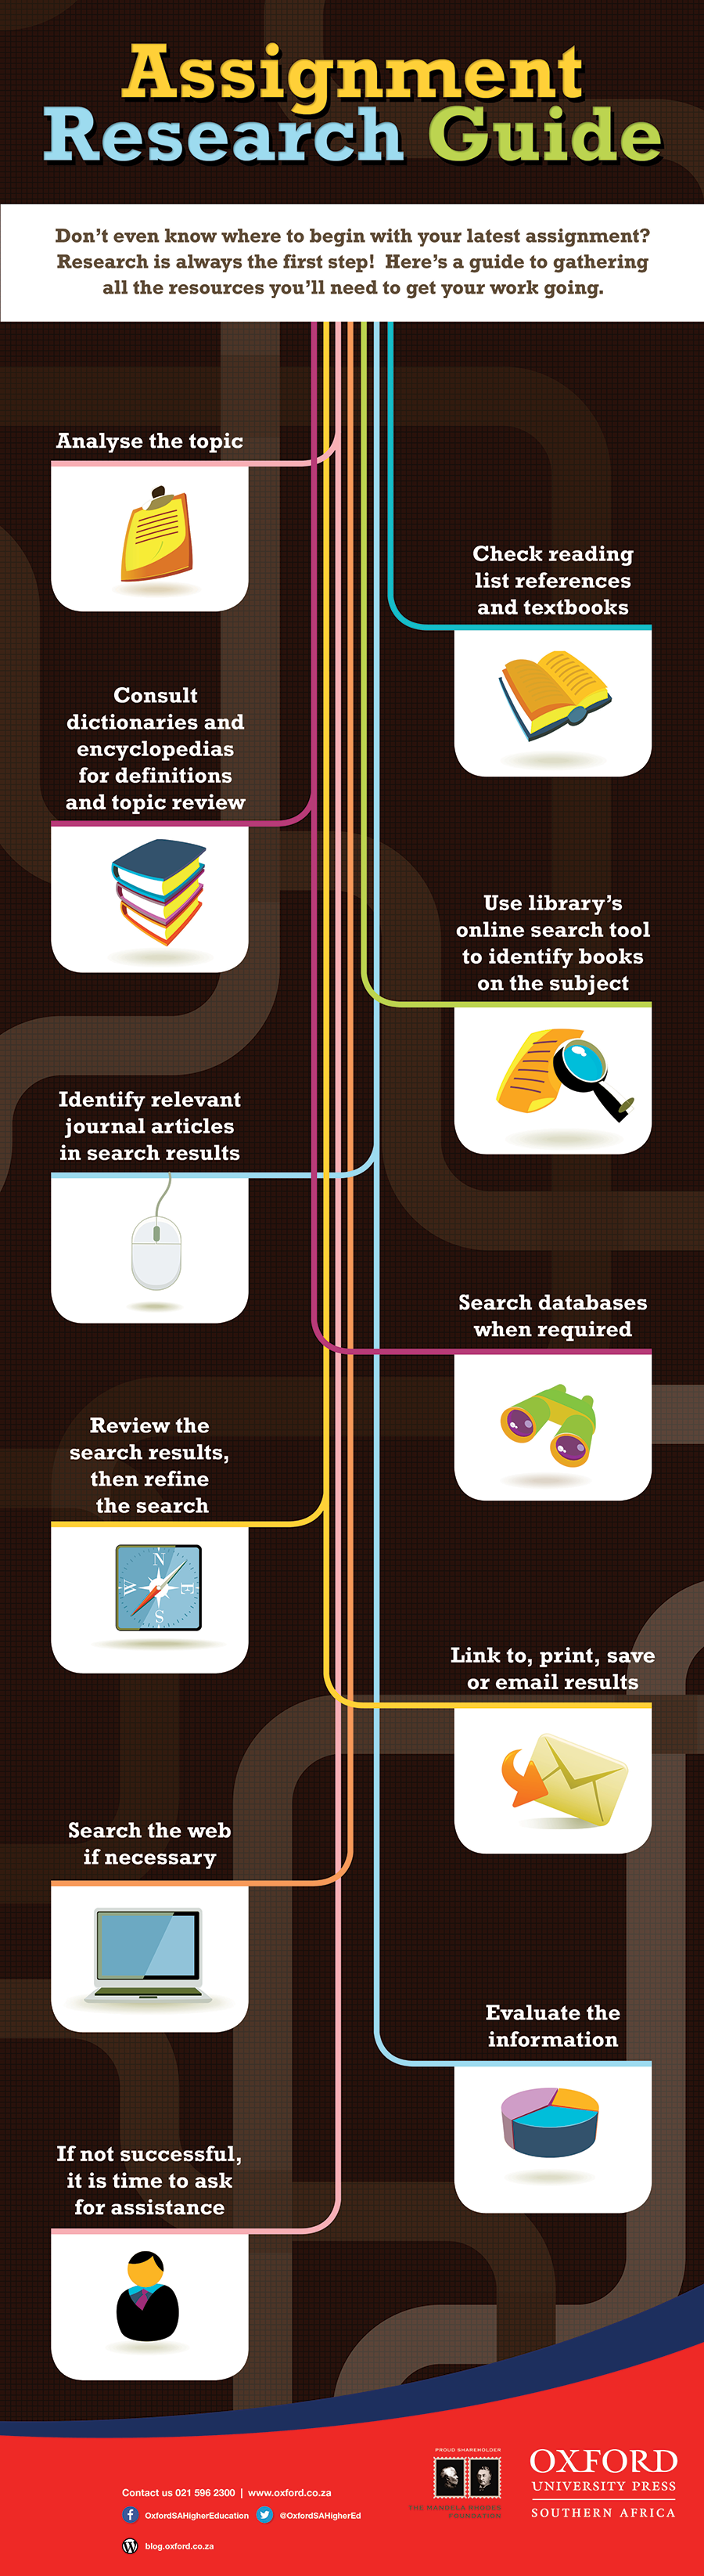 HED_DIG_9887_15_infographic